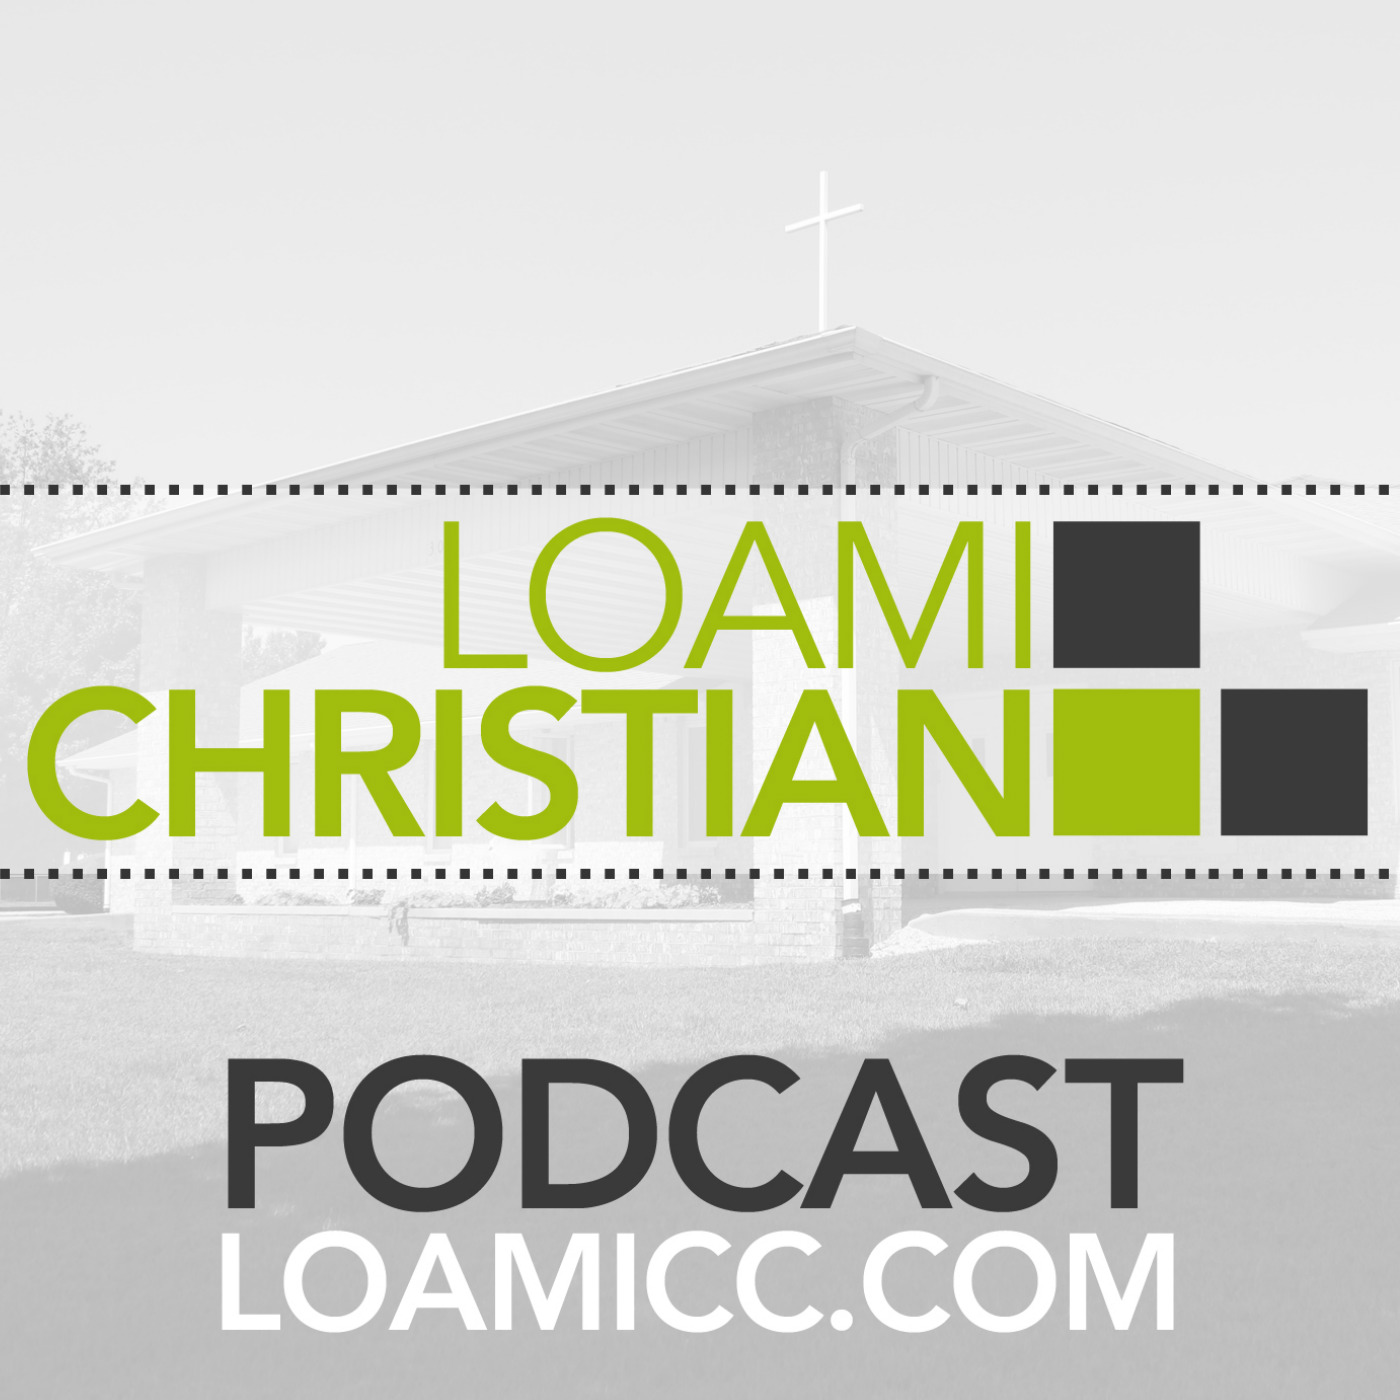 Loami Christian Church Podcast